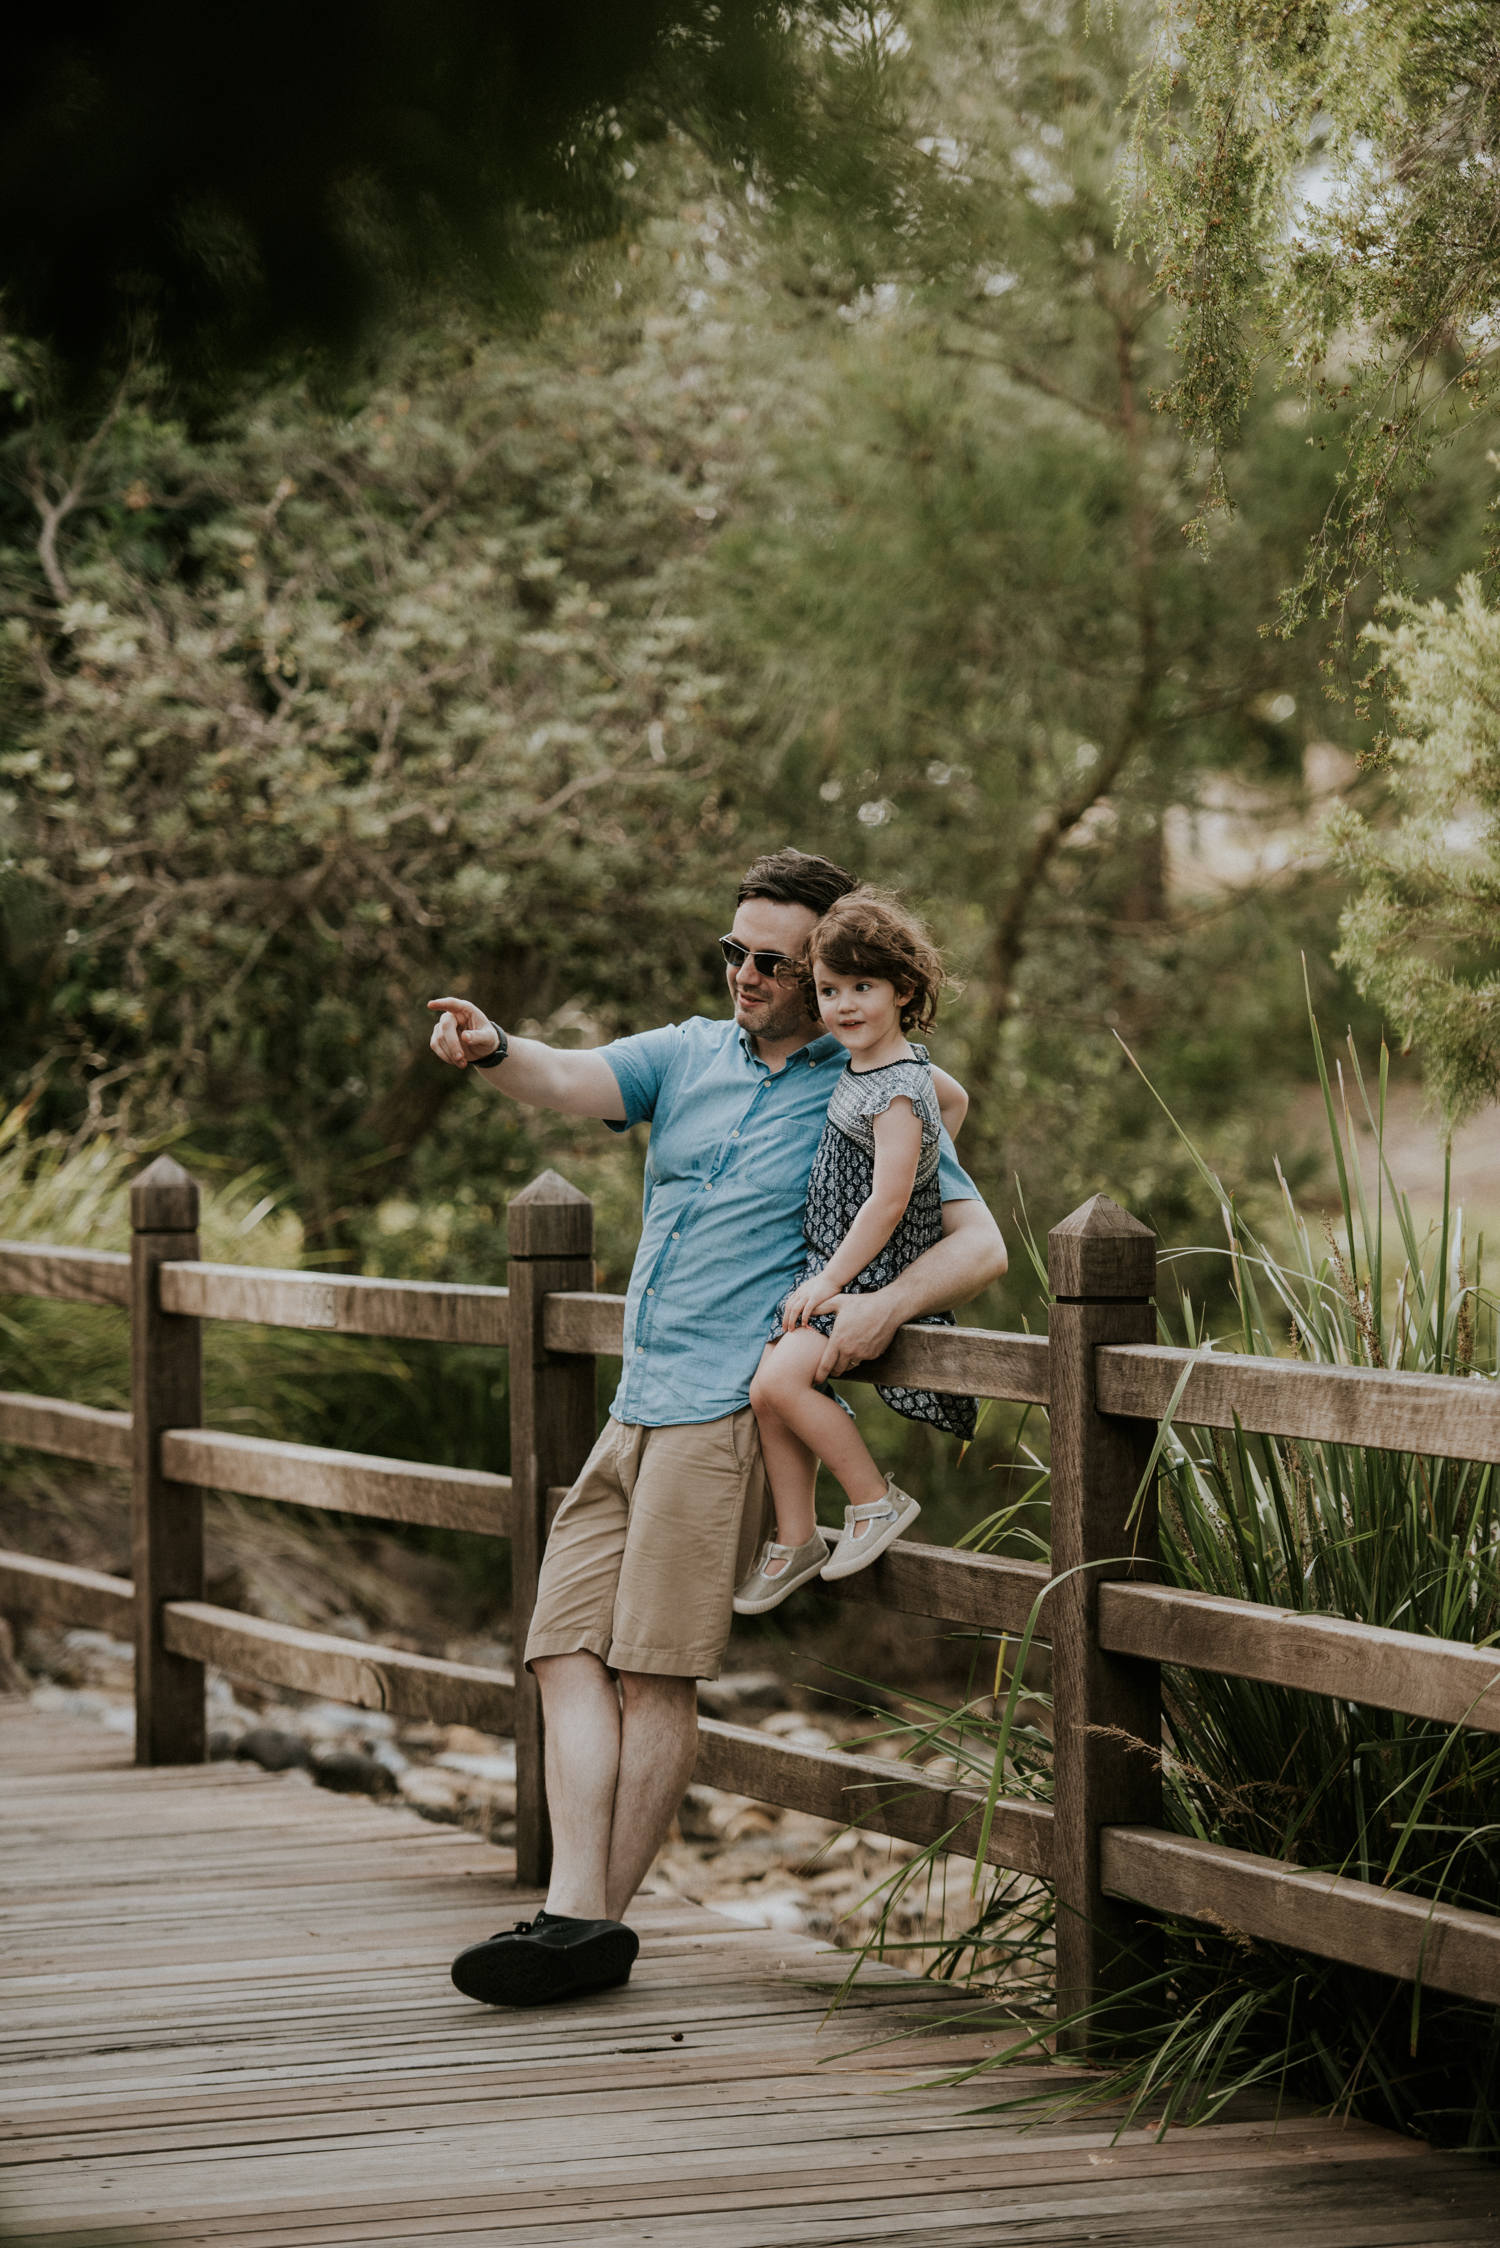 Brisbane Family Photographer | Newborn-Lifestyle Photography-7.jpg